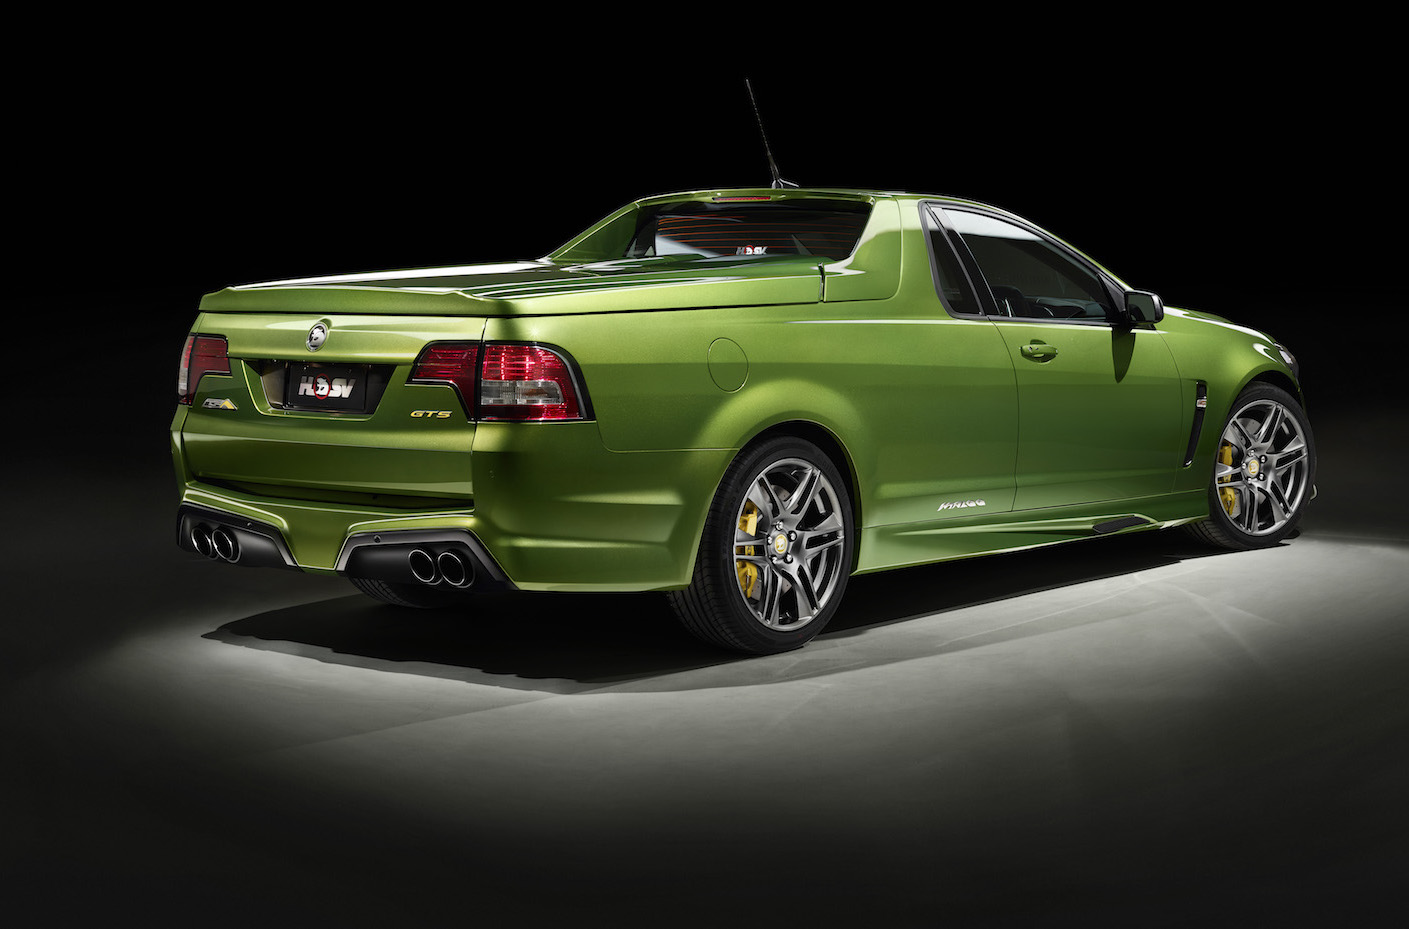 2018 honda ute. beautiful ute if true this would make it the ultimate australianmade ute in terms of  power and performance surpassing limited edition 430kw gts maloo last year inside 2018 honda